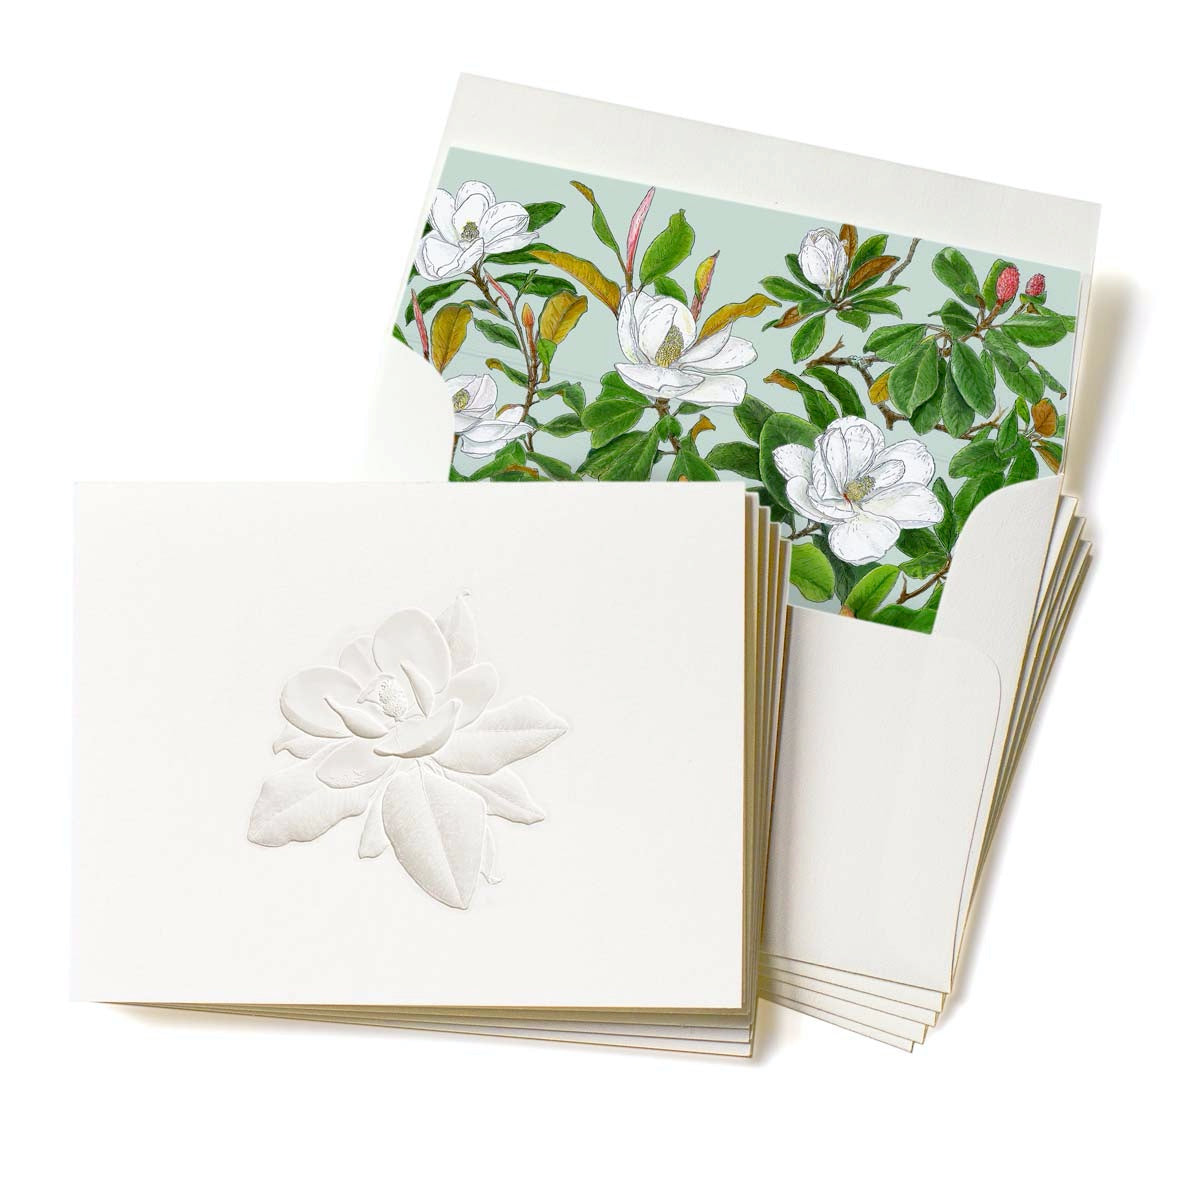 Deep Embossed Southern Magnolia Stationery, Set of 5